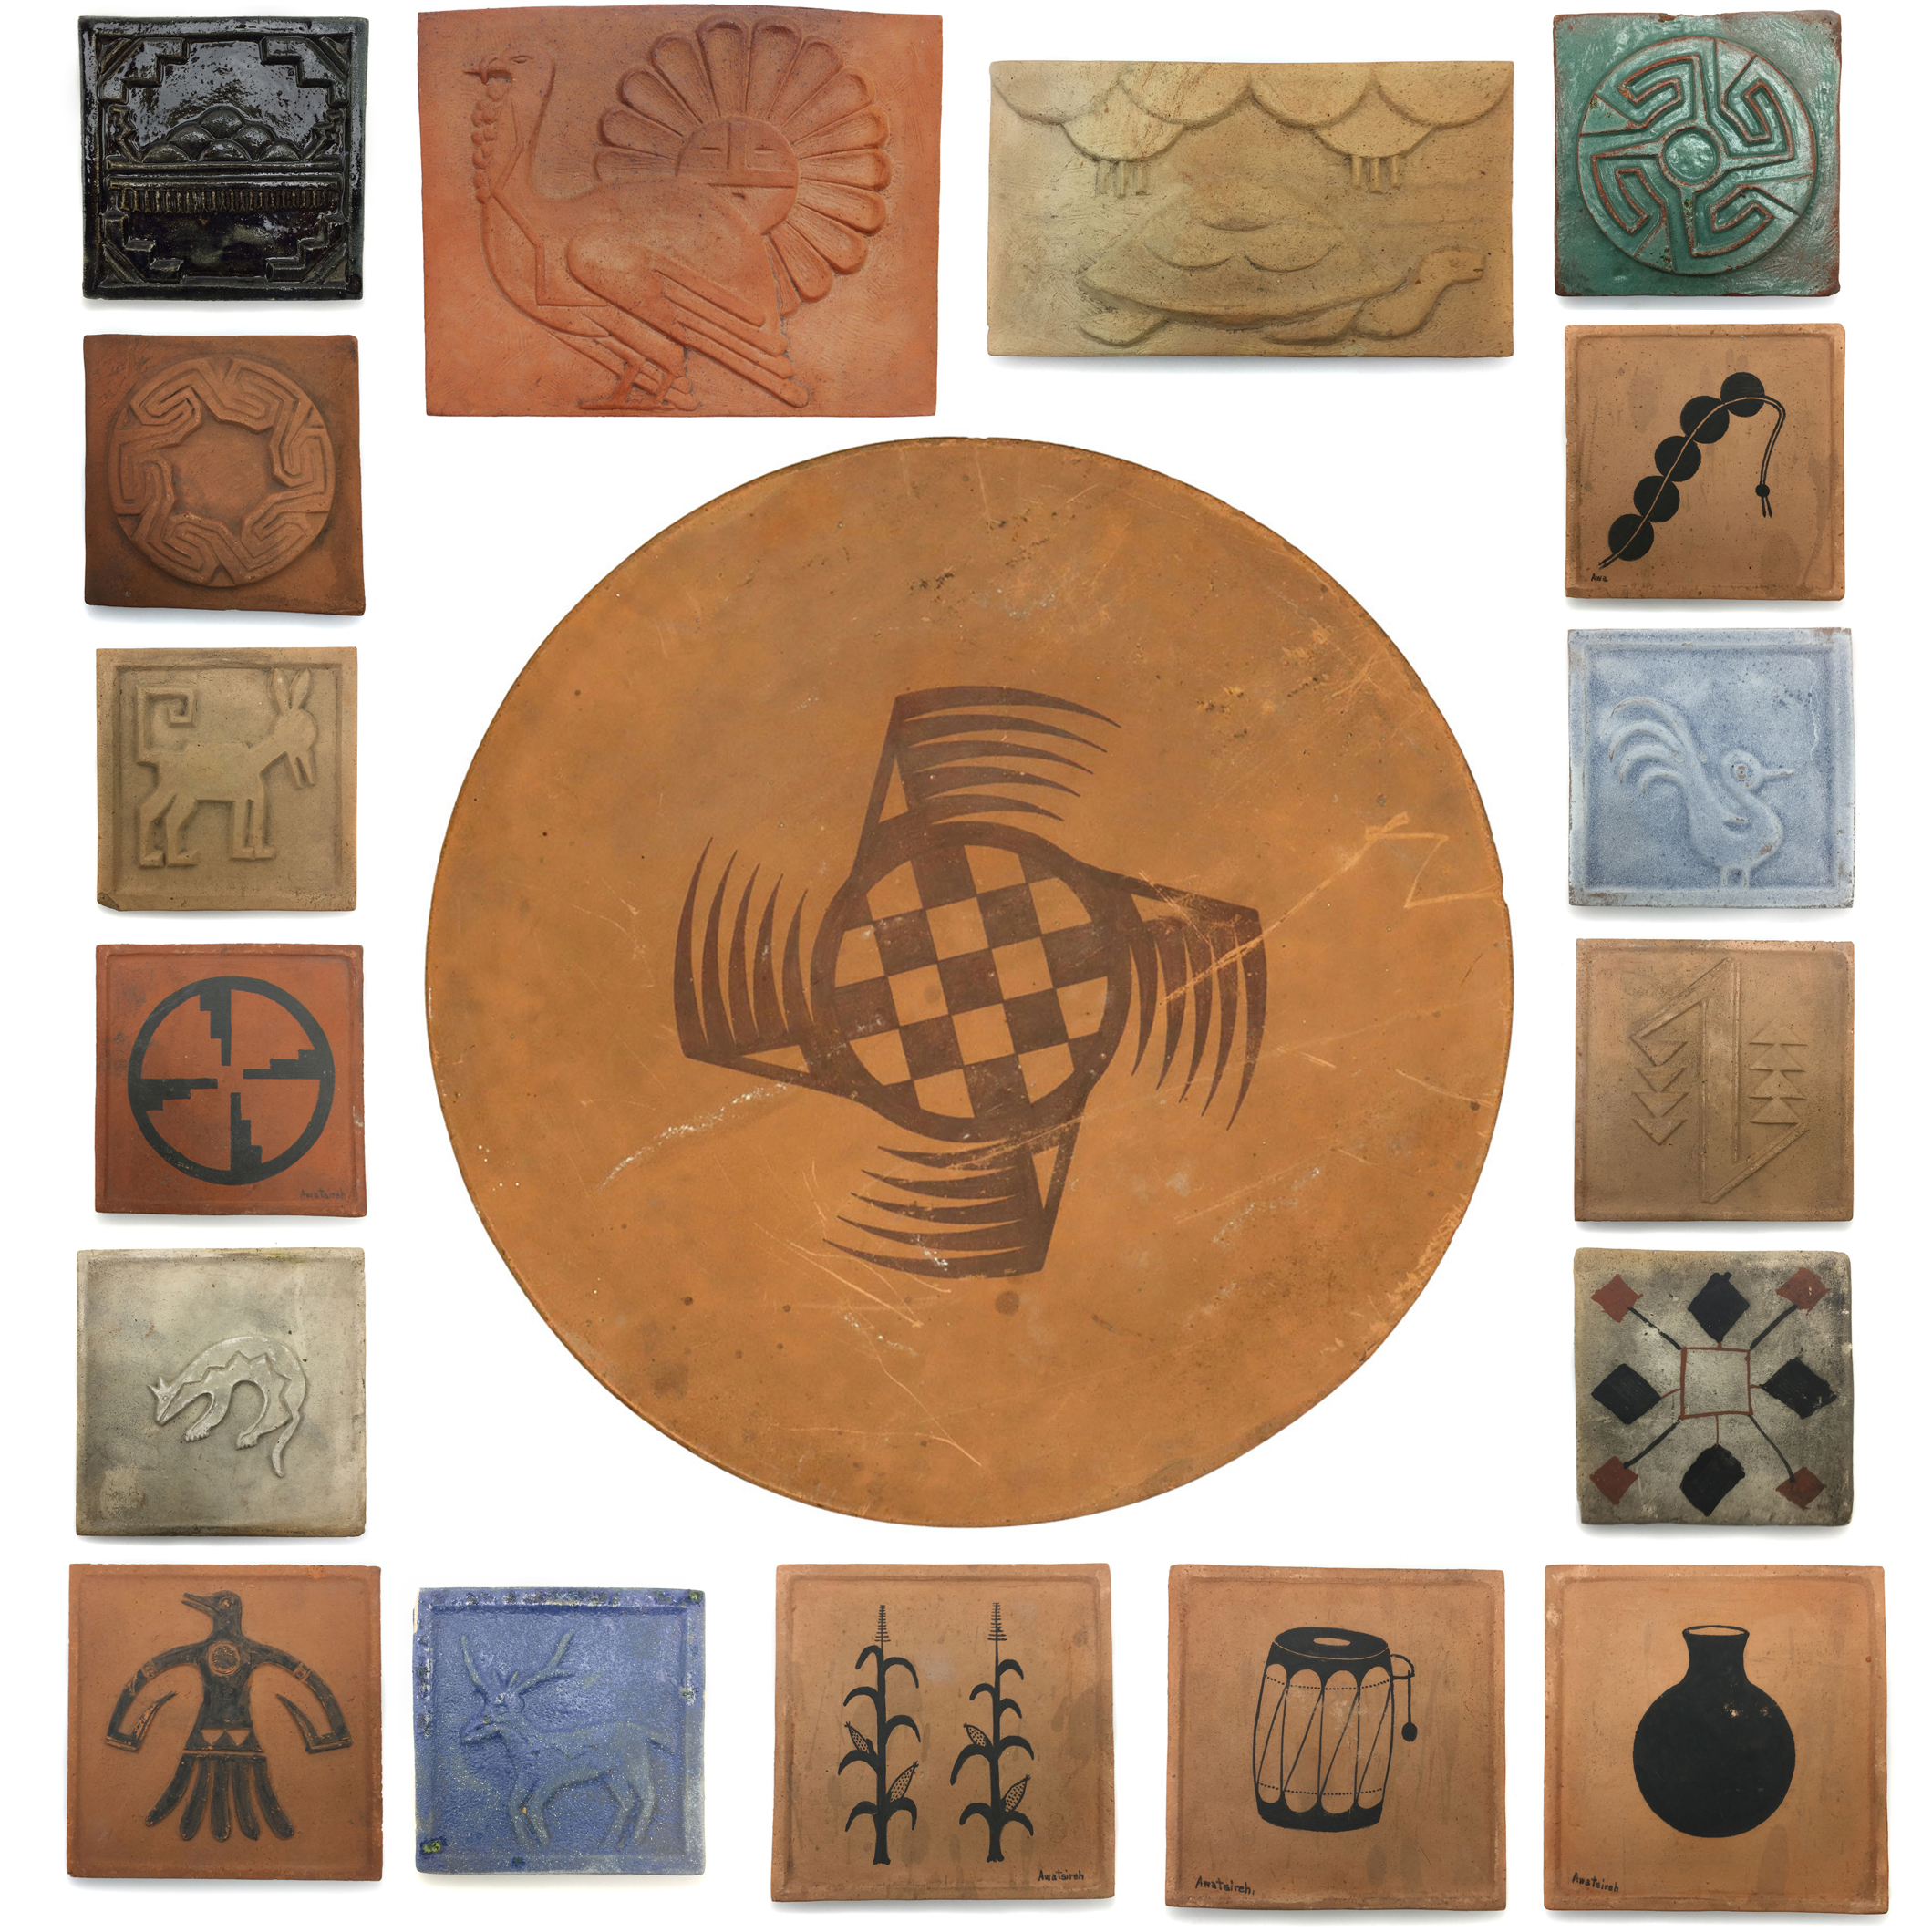 May 28, 2021 VERY RARE! Collection of Awa Tsireh Pottery Tiles from the 1920s